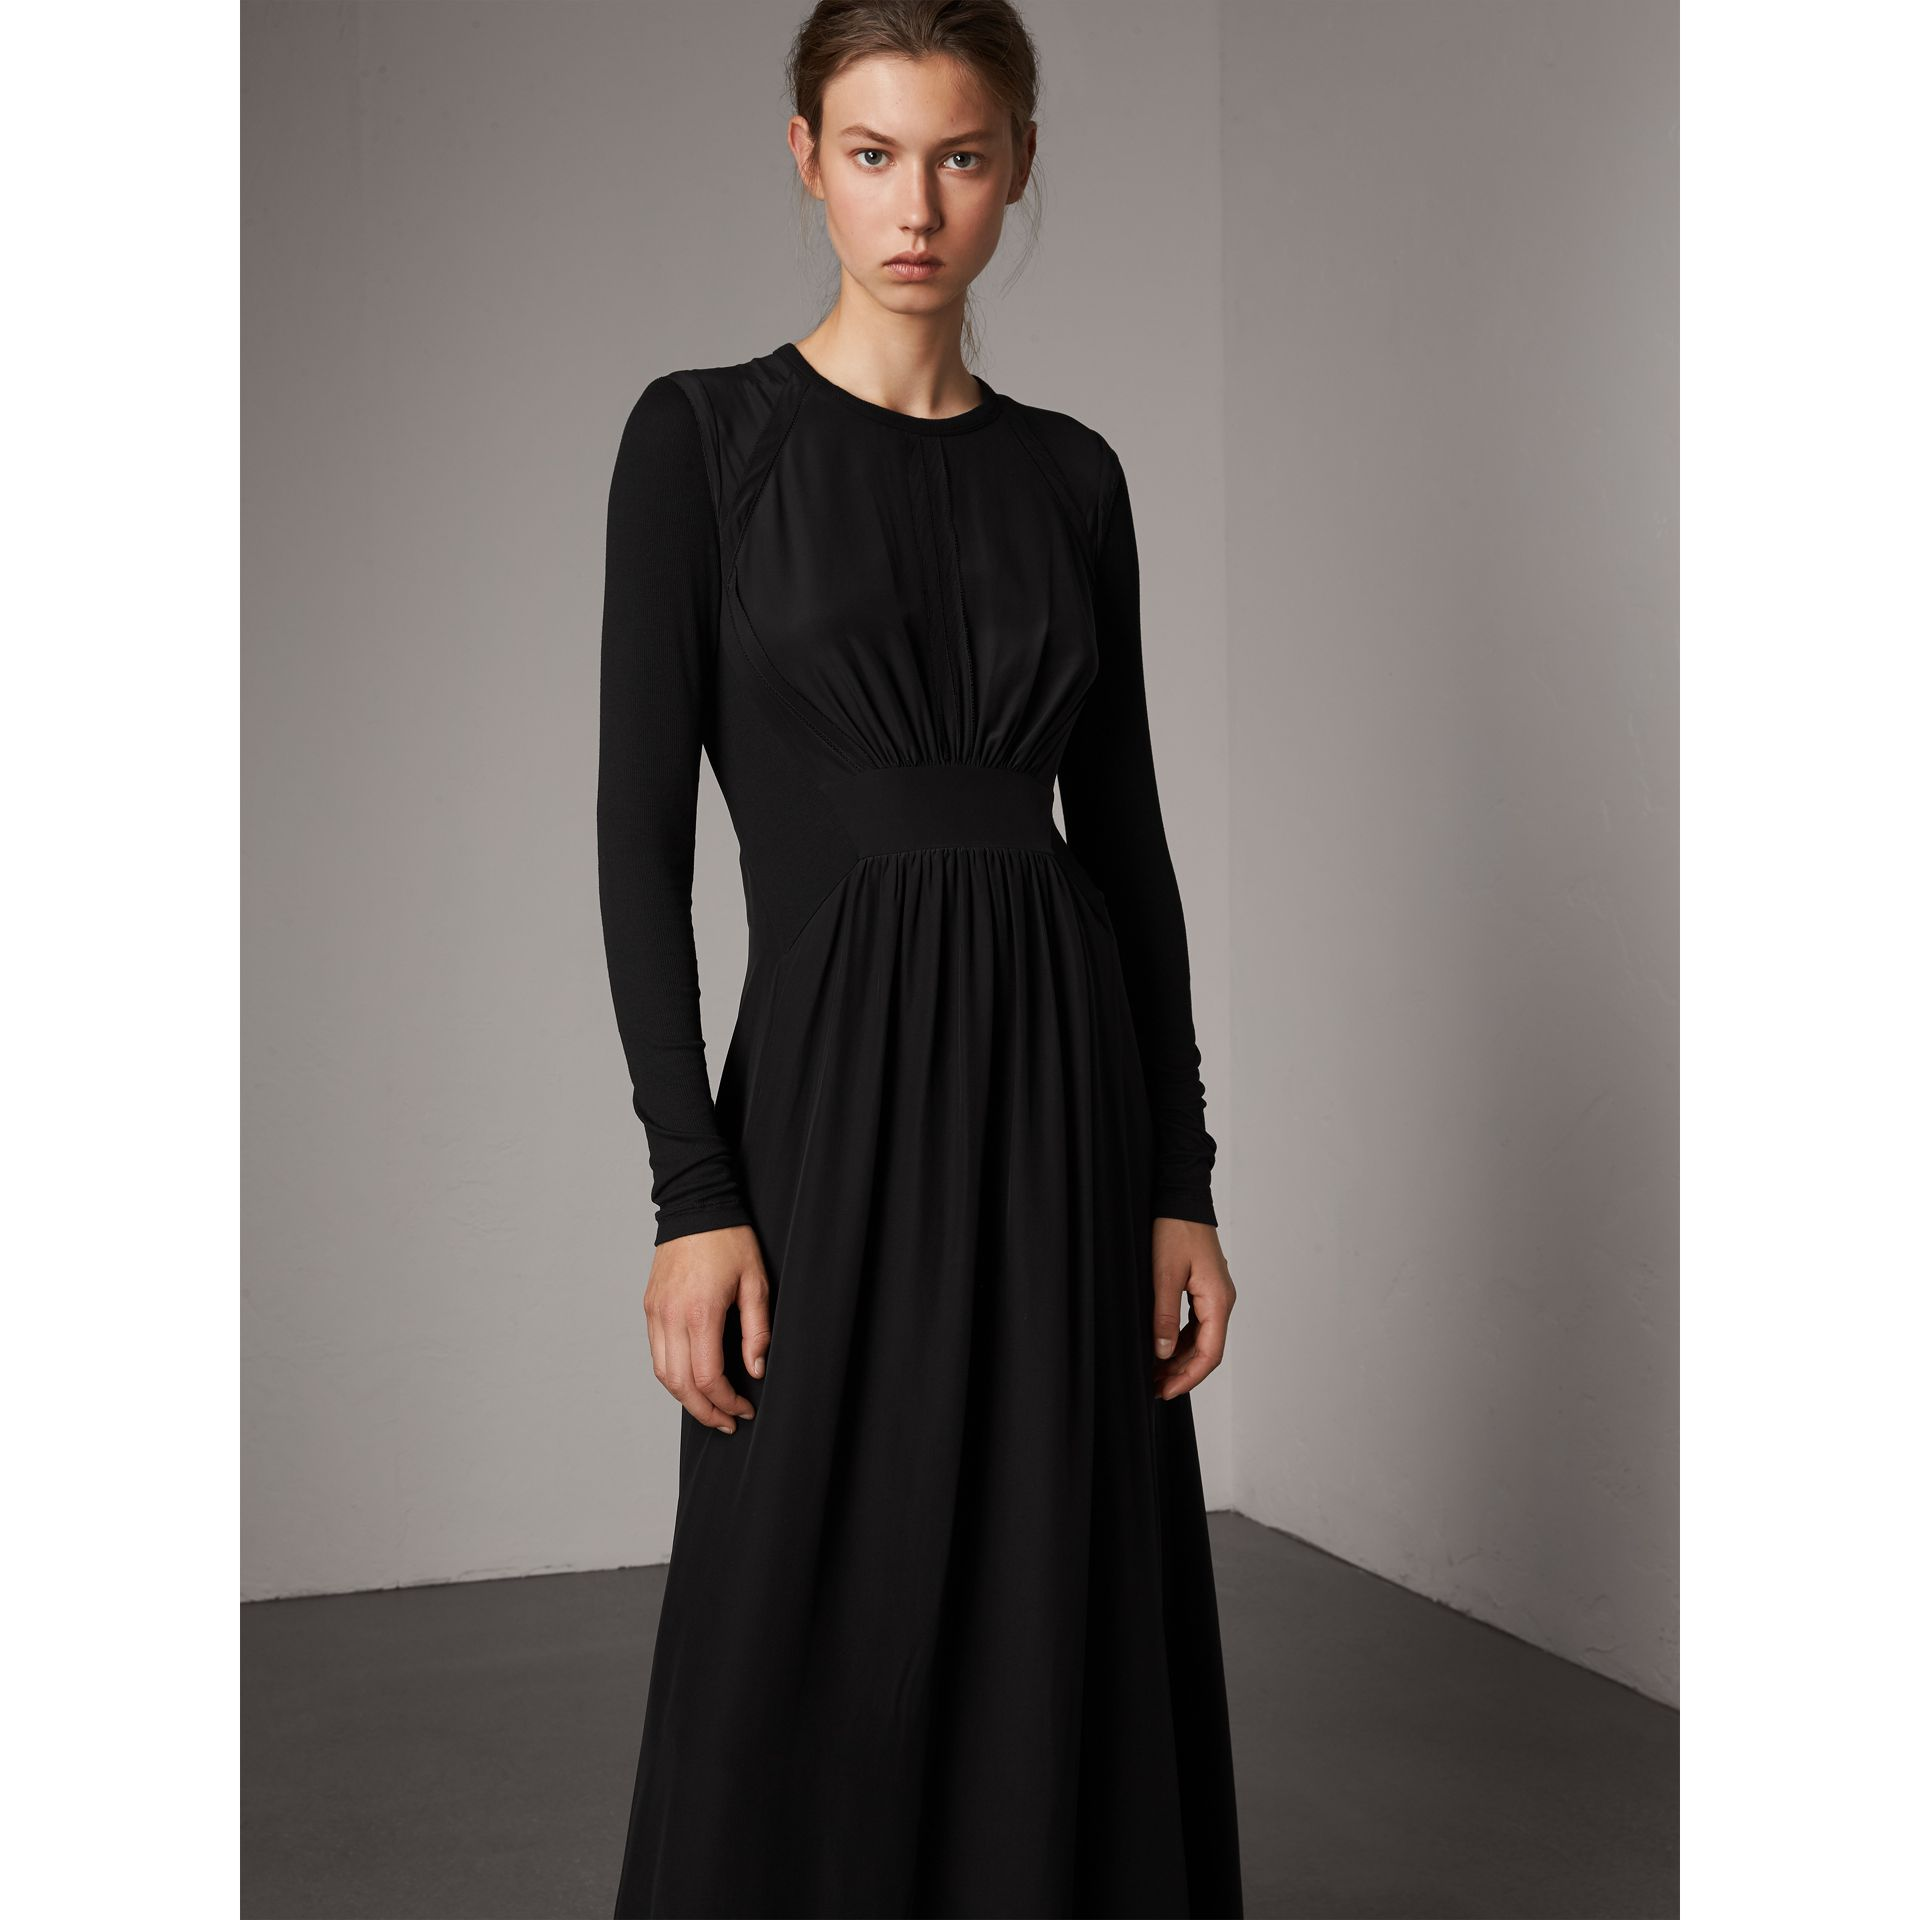 Silk Floor-length Gathered Dress in Black - Women | Burberry - gallery image 4